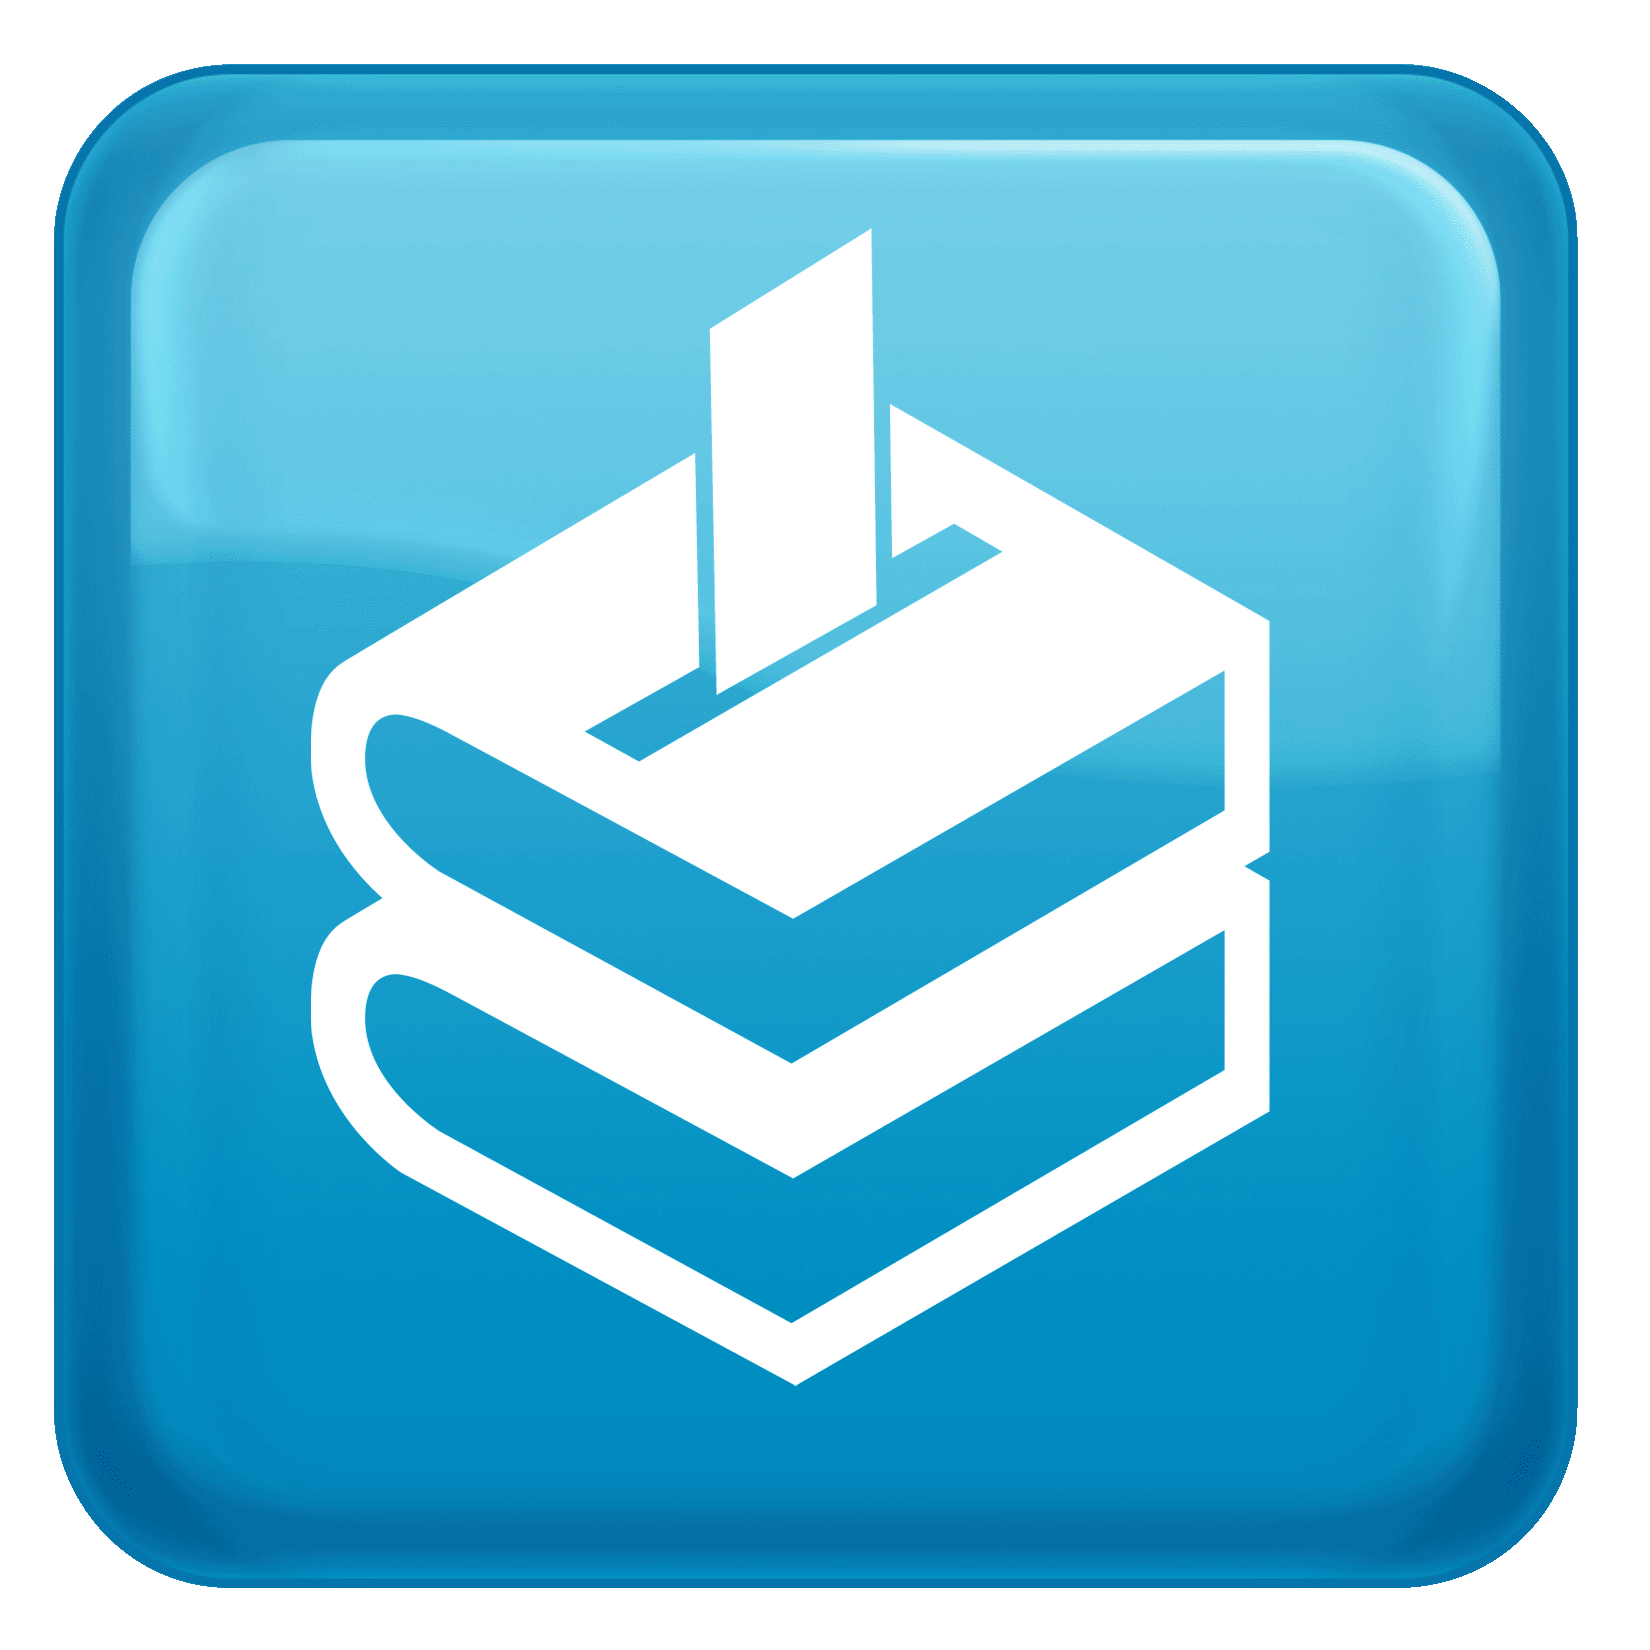 Information Button Book Organization Now Everylibrary PNG Image